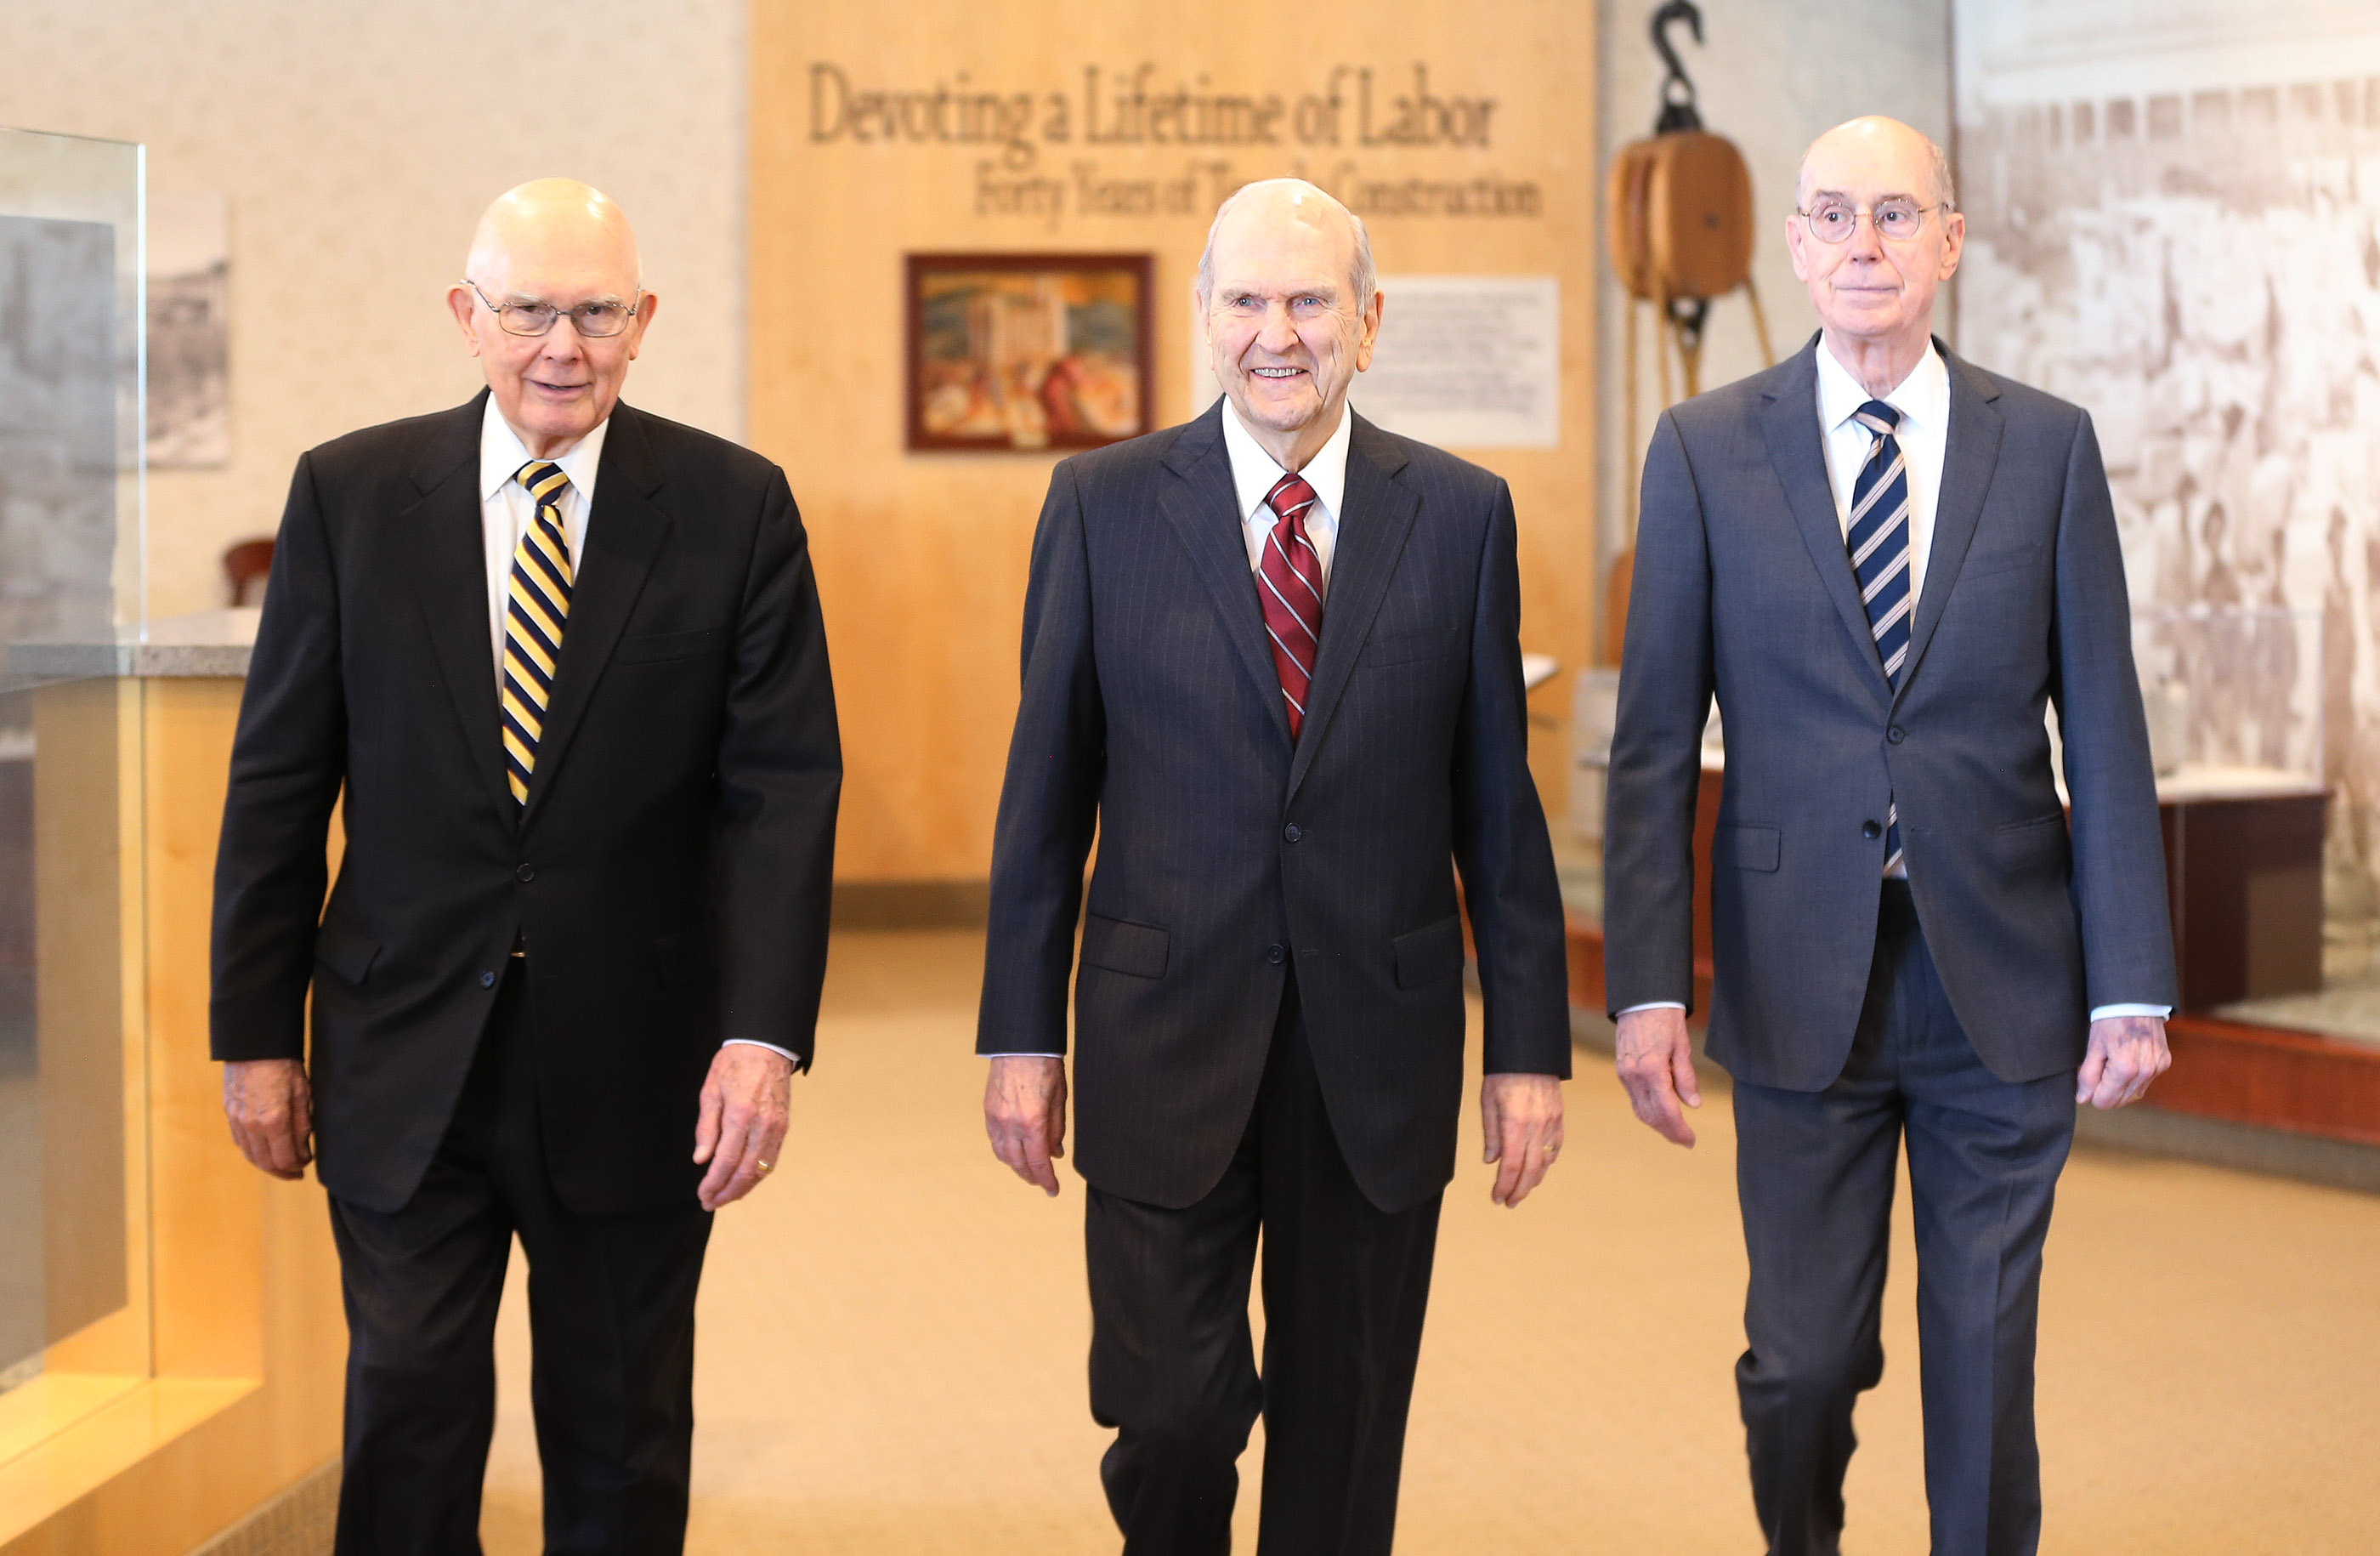 President Russell M. Nelson of The Church of Jesus Christ of Latter-day Saints, center, and his First Presidency counselors, President Dallin H. Oaks, first counselor, left, and President Henry B. Eyring, second counselor, right, walk through the South Visitors' Center prior to a press conference in Salt Lake City on Friday, April 19, 2019.